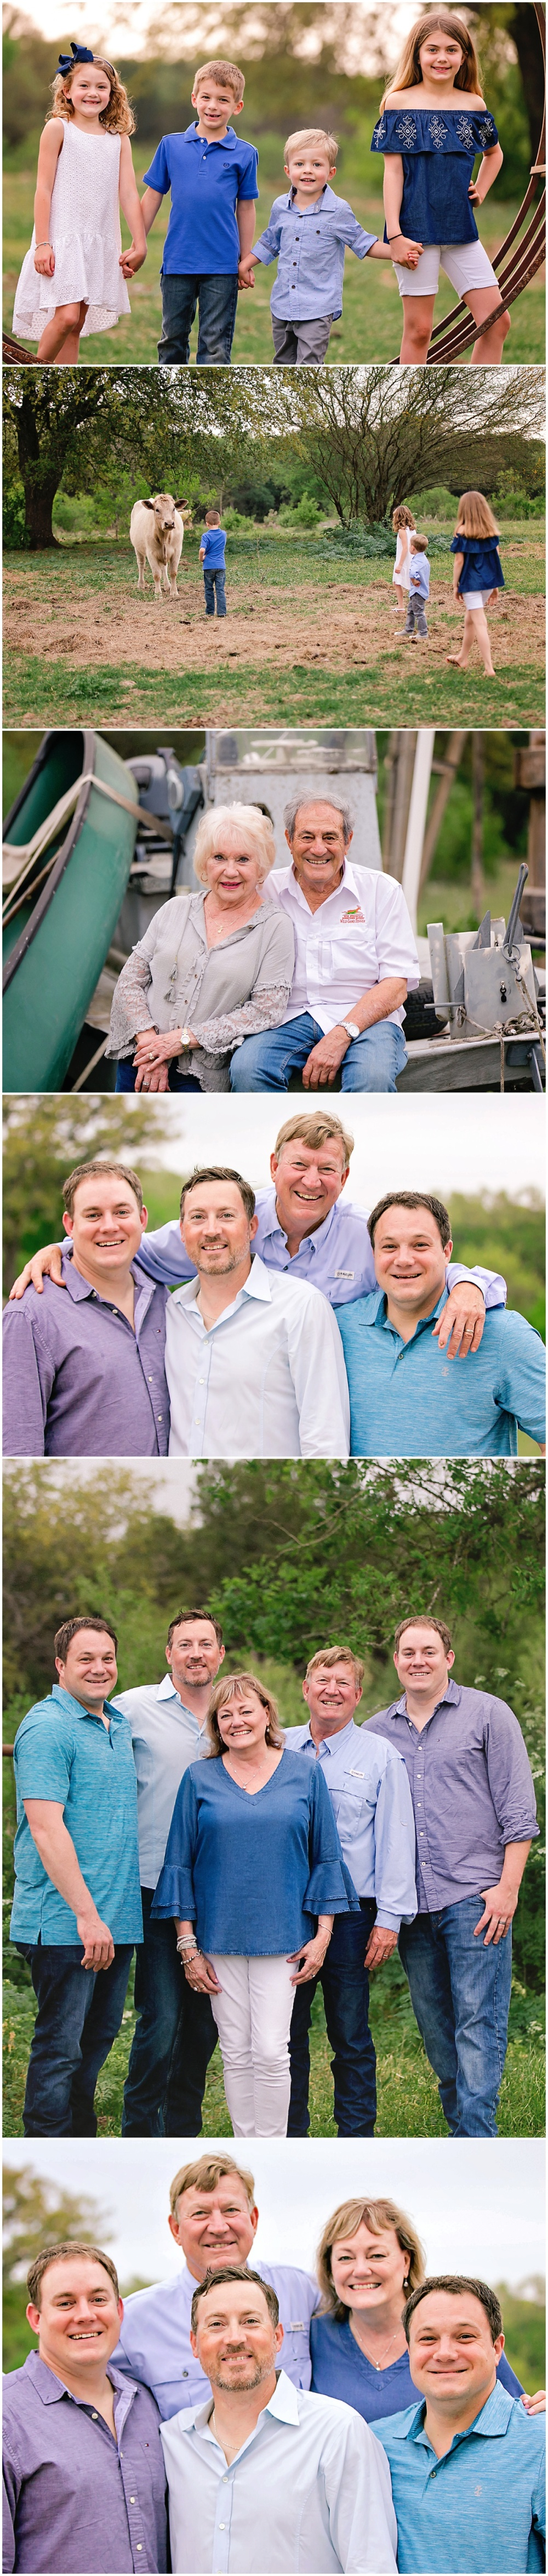 Family-Portraits-Classen-New-Braunels-Ranch-Carly-Barton-Photography_0046.jpg